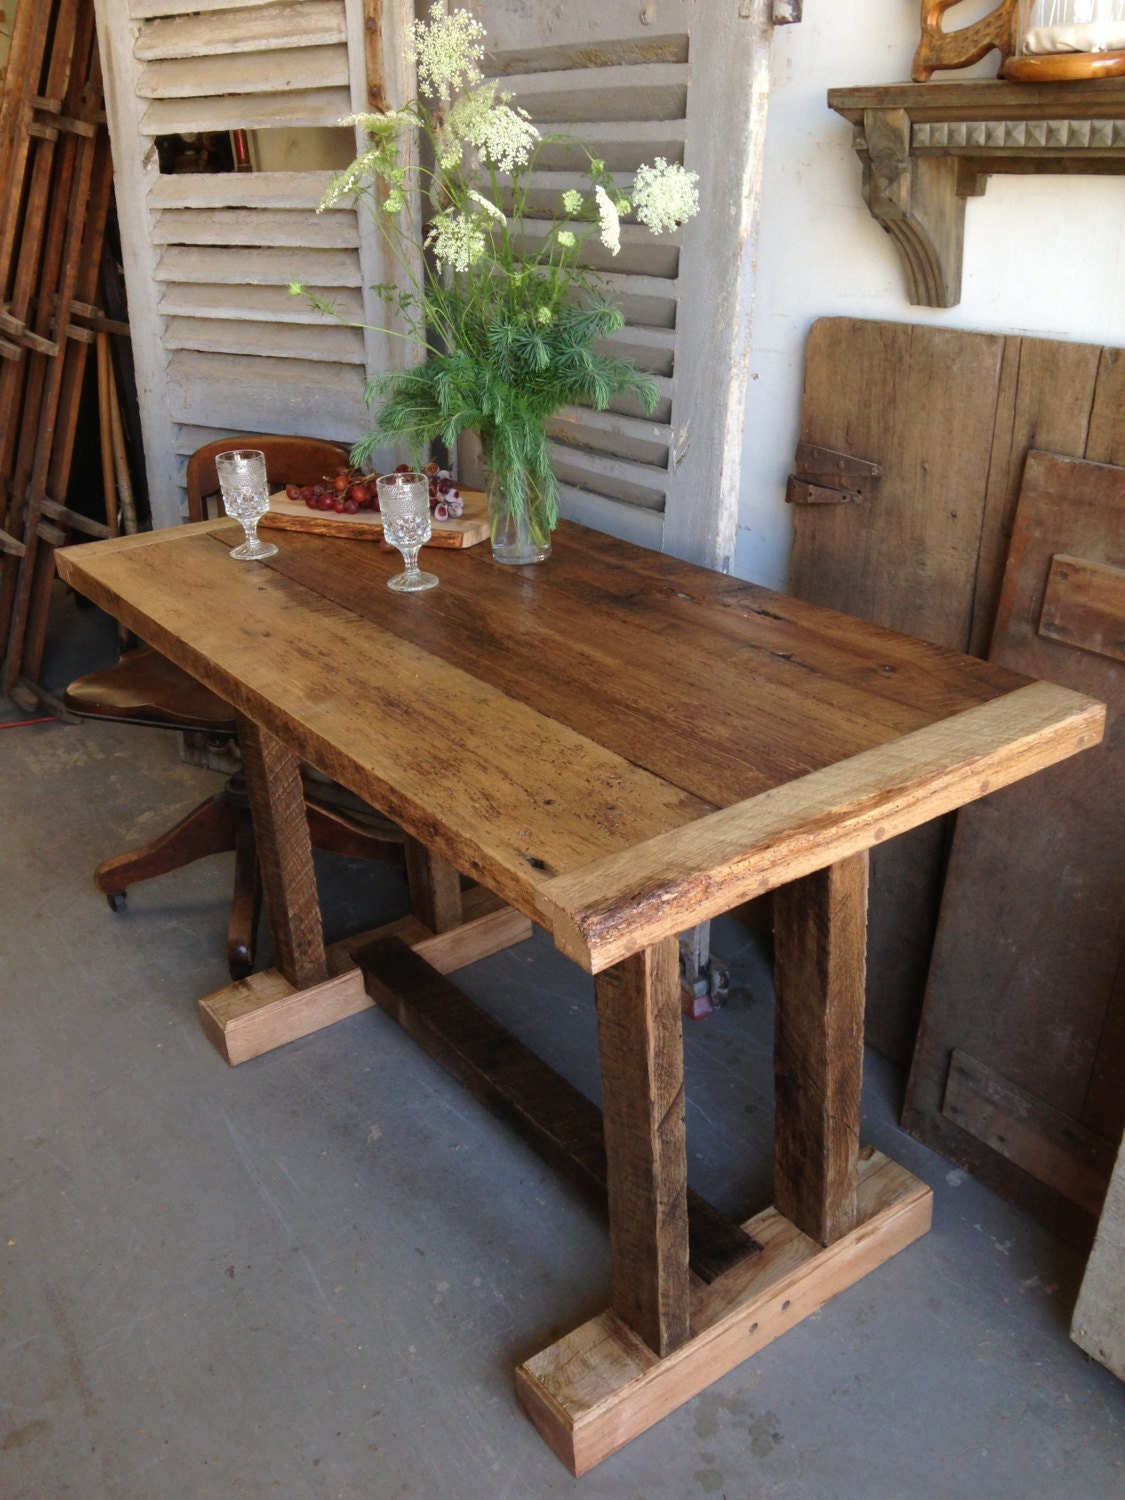 Reclaimed Wooden Farm Table 25 x 50 x 30